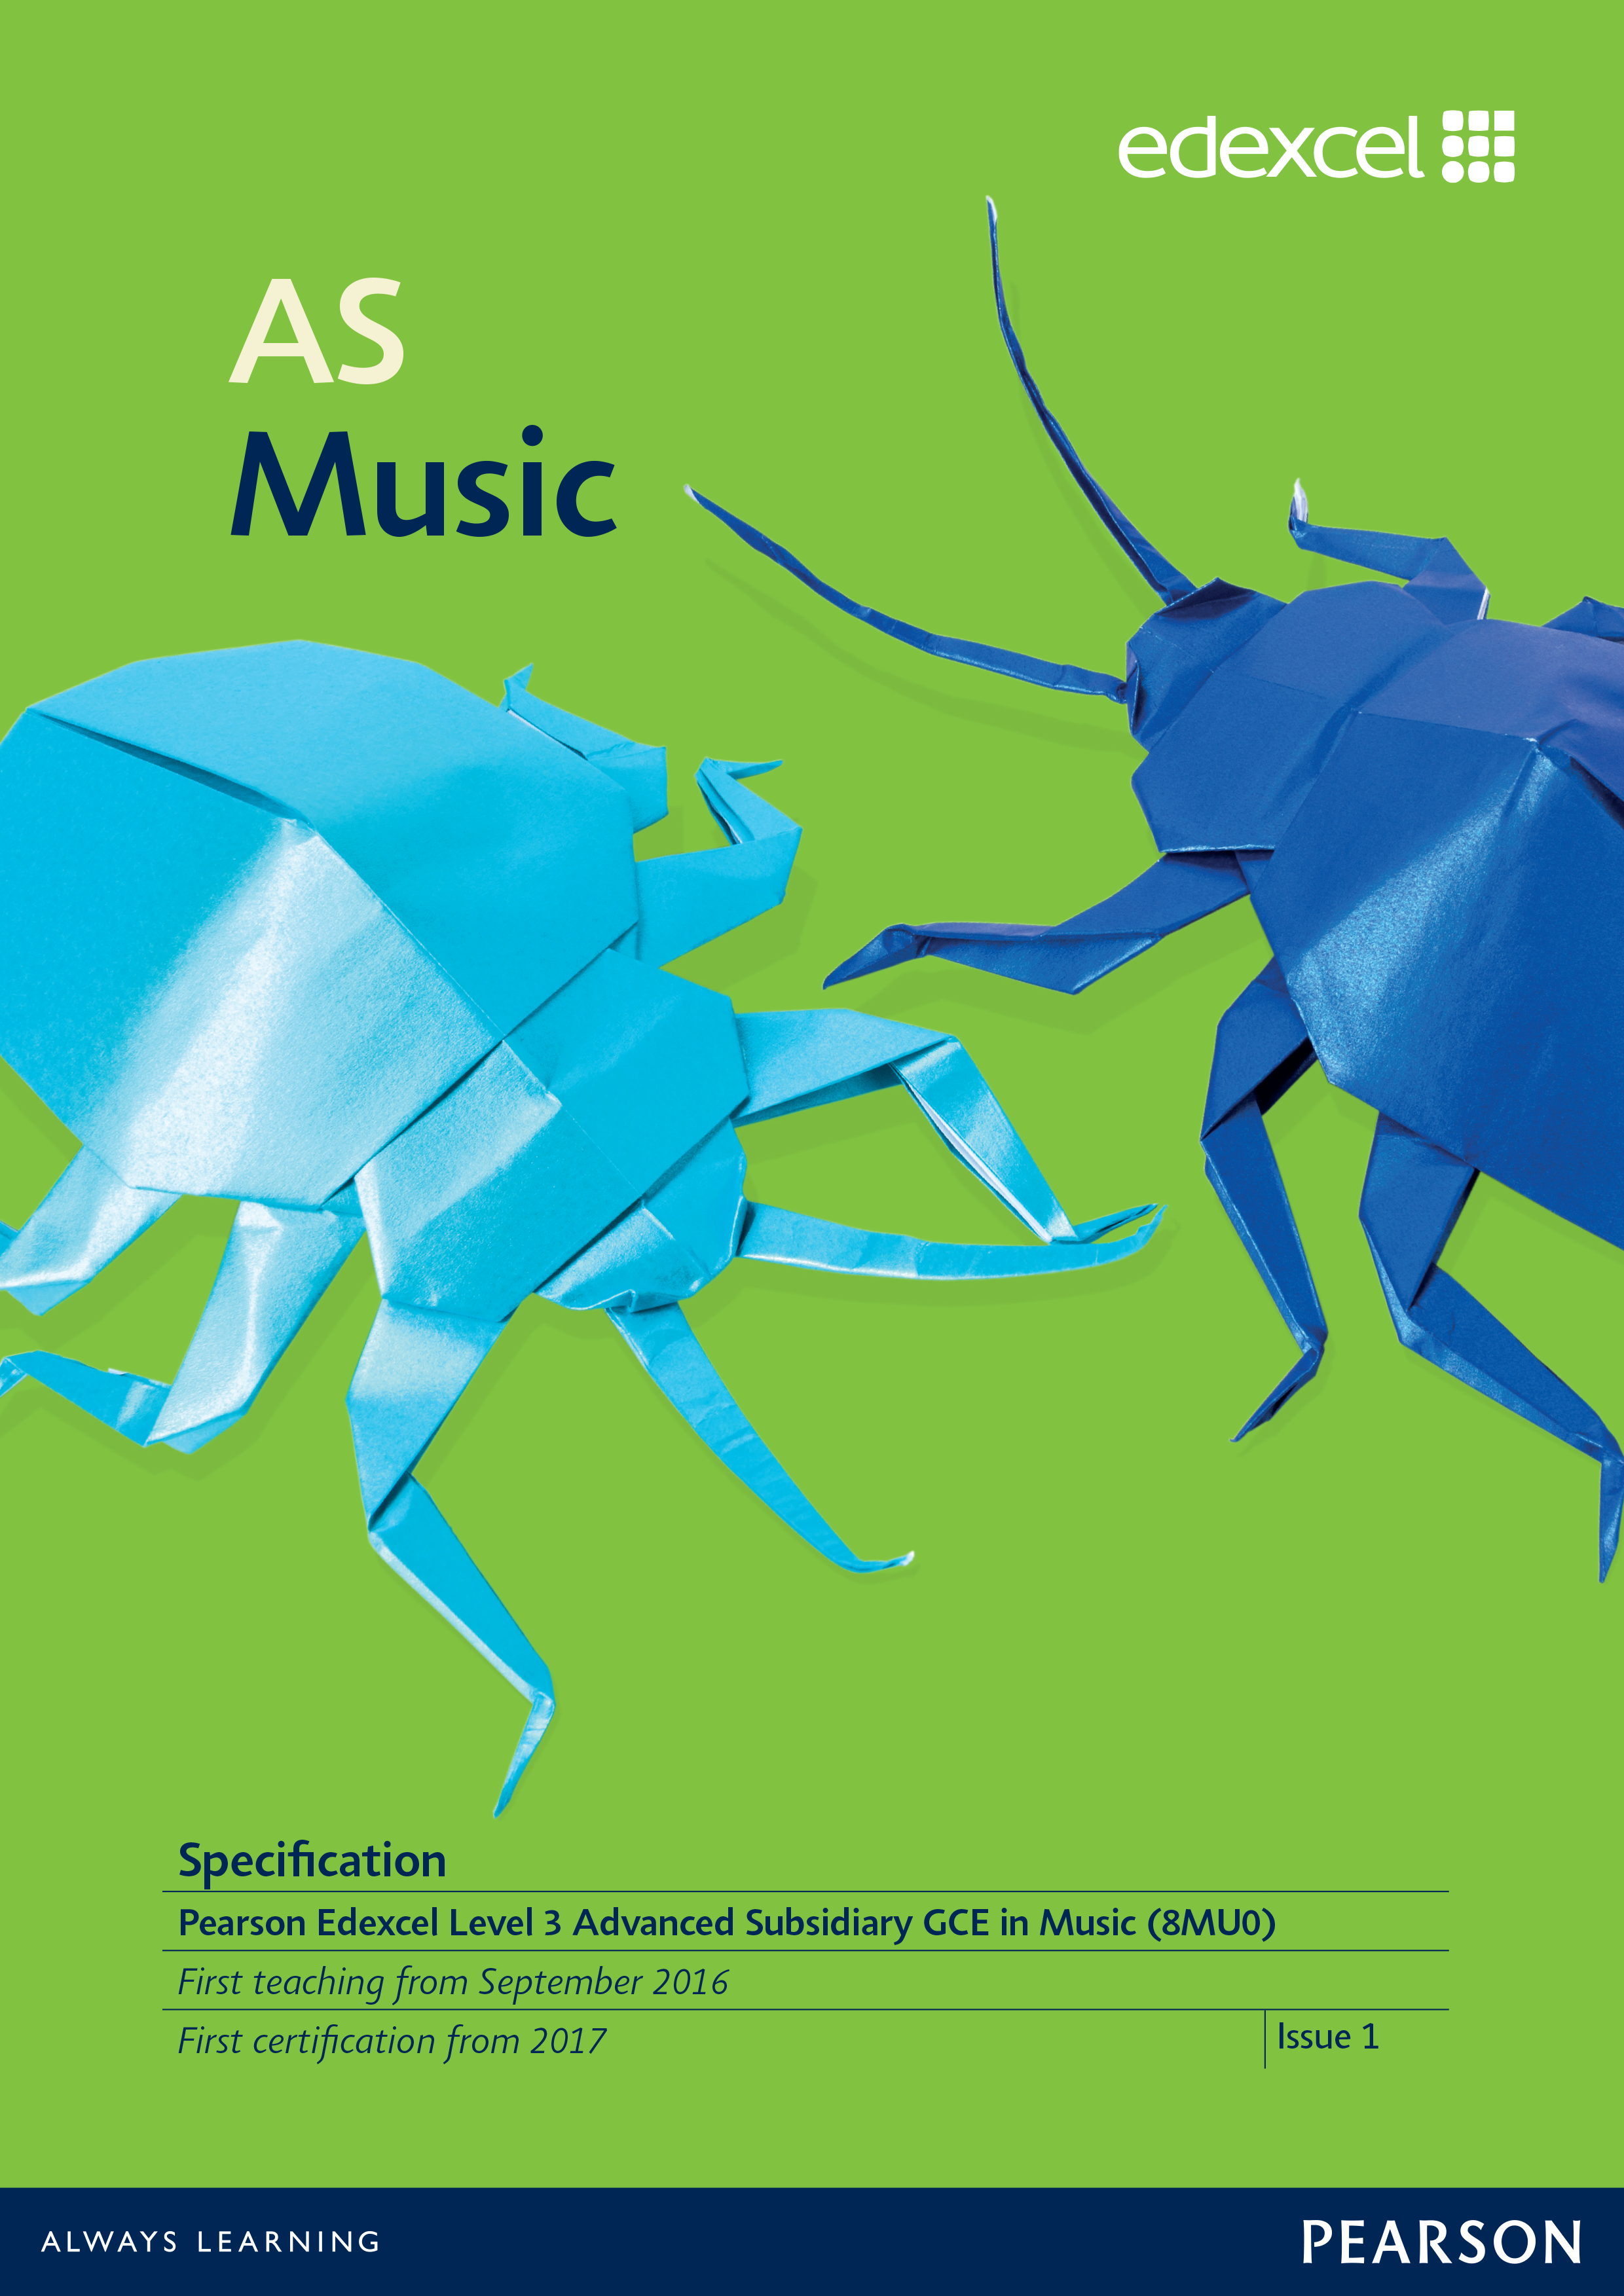 Link to AS Music specification page